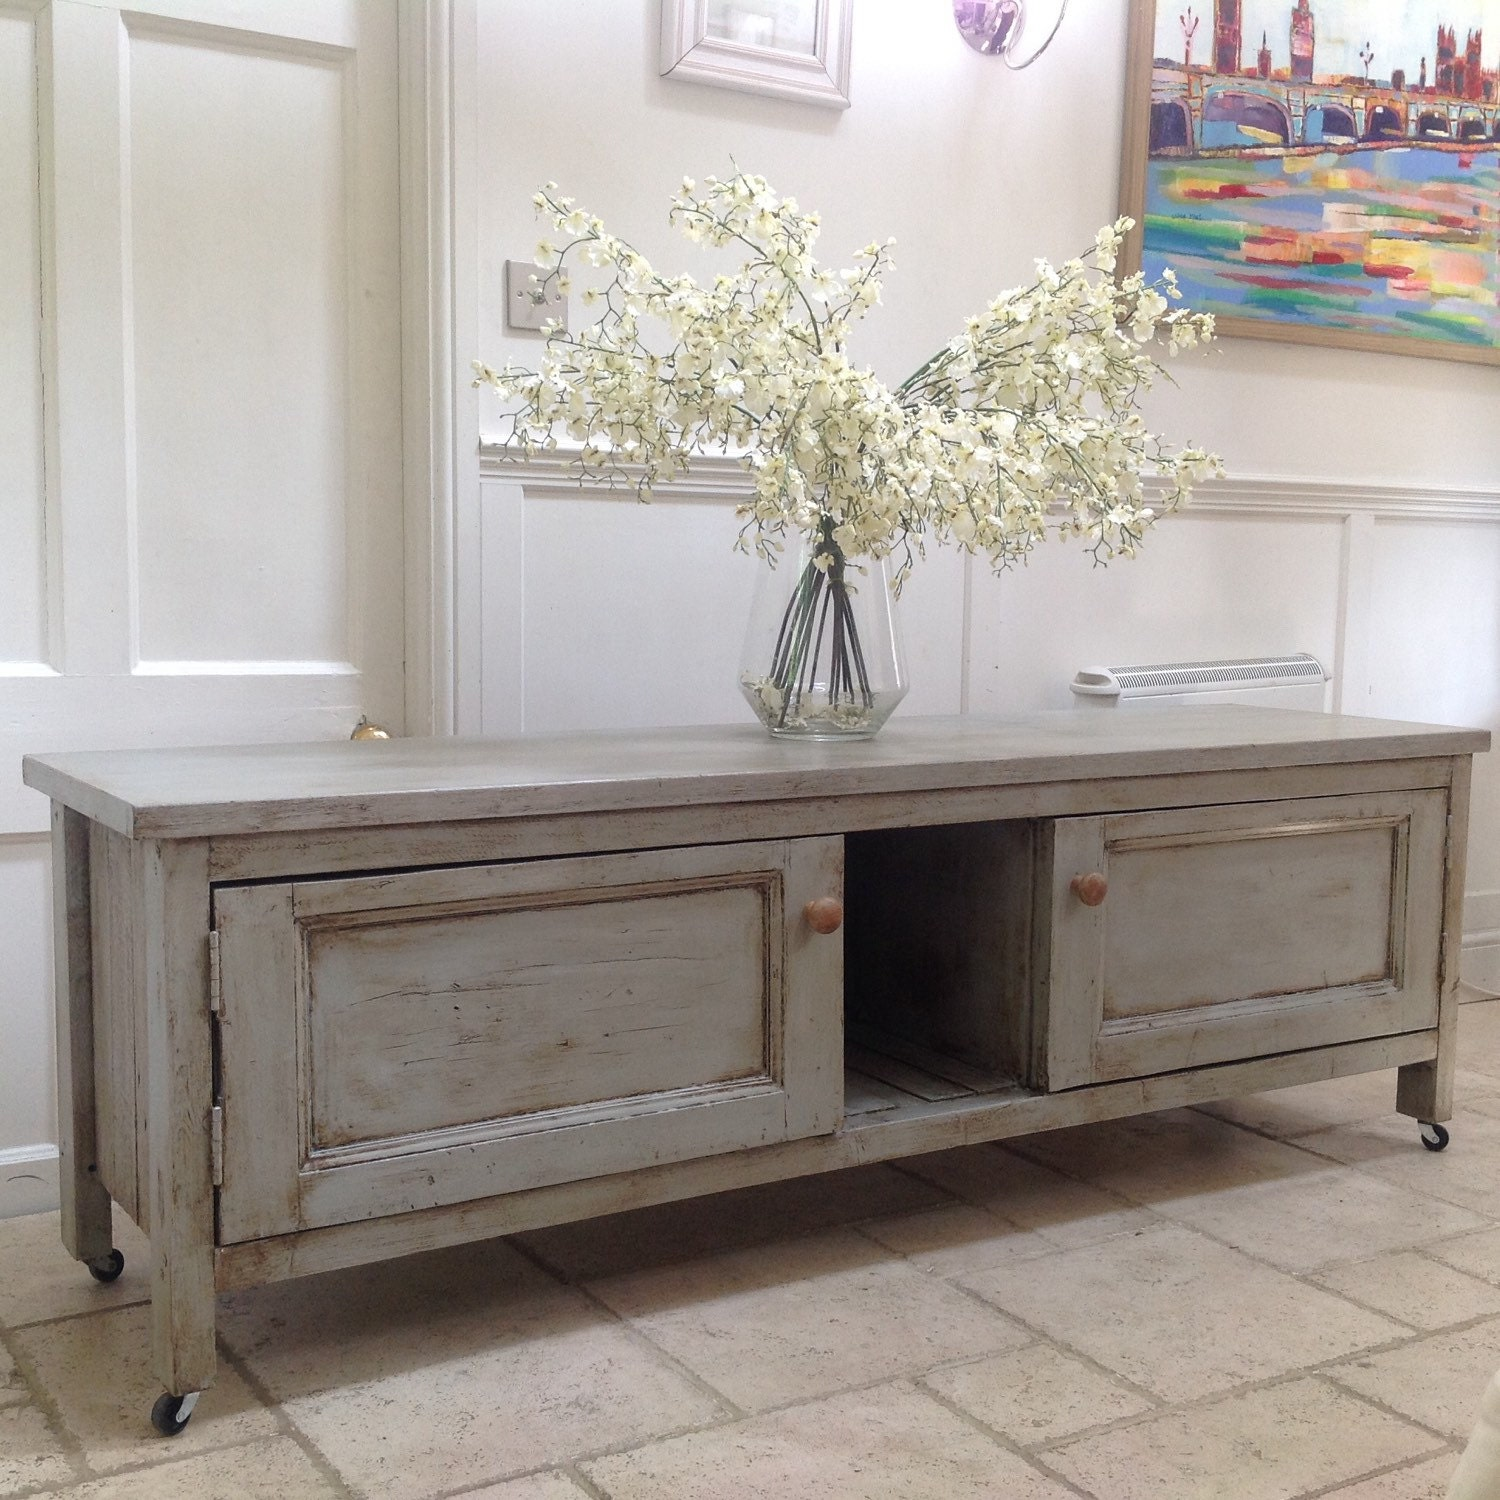 Image Result For Small Entryway Table